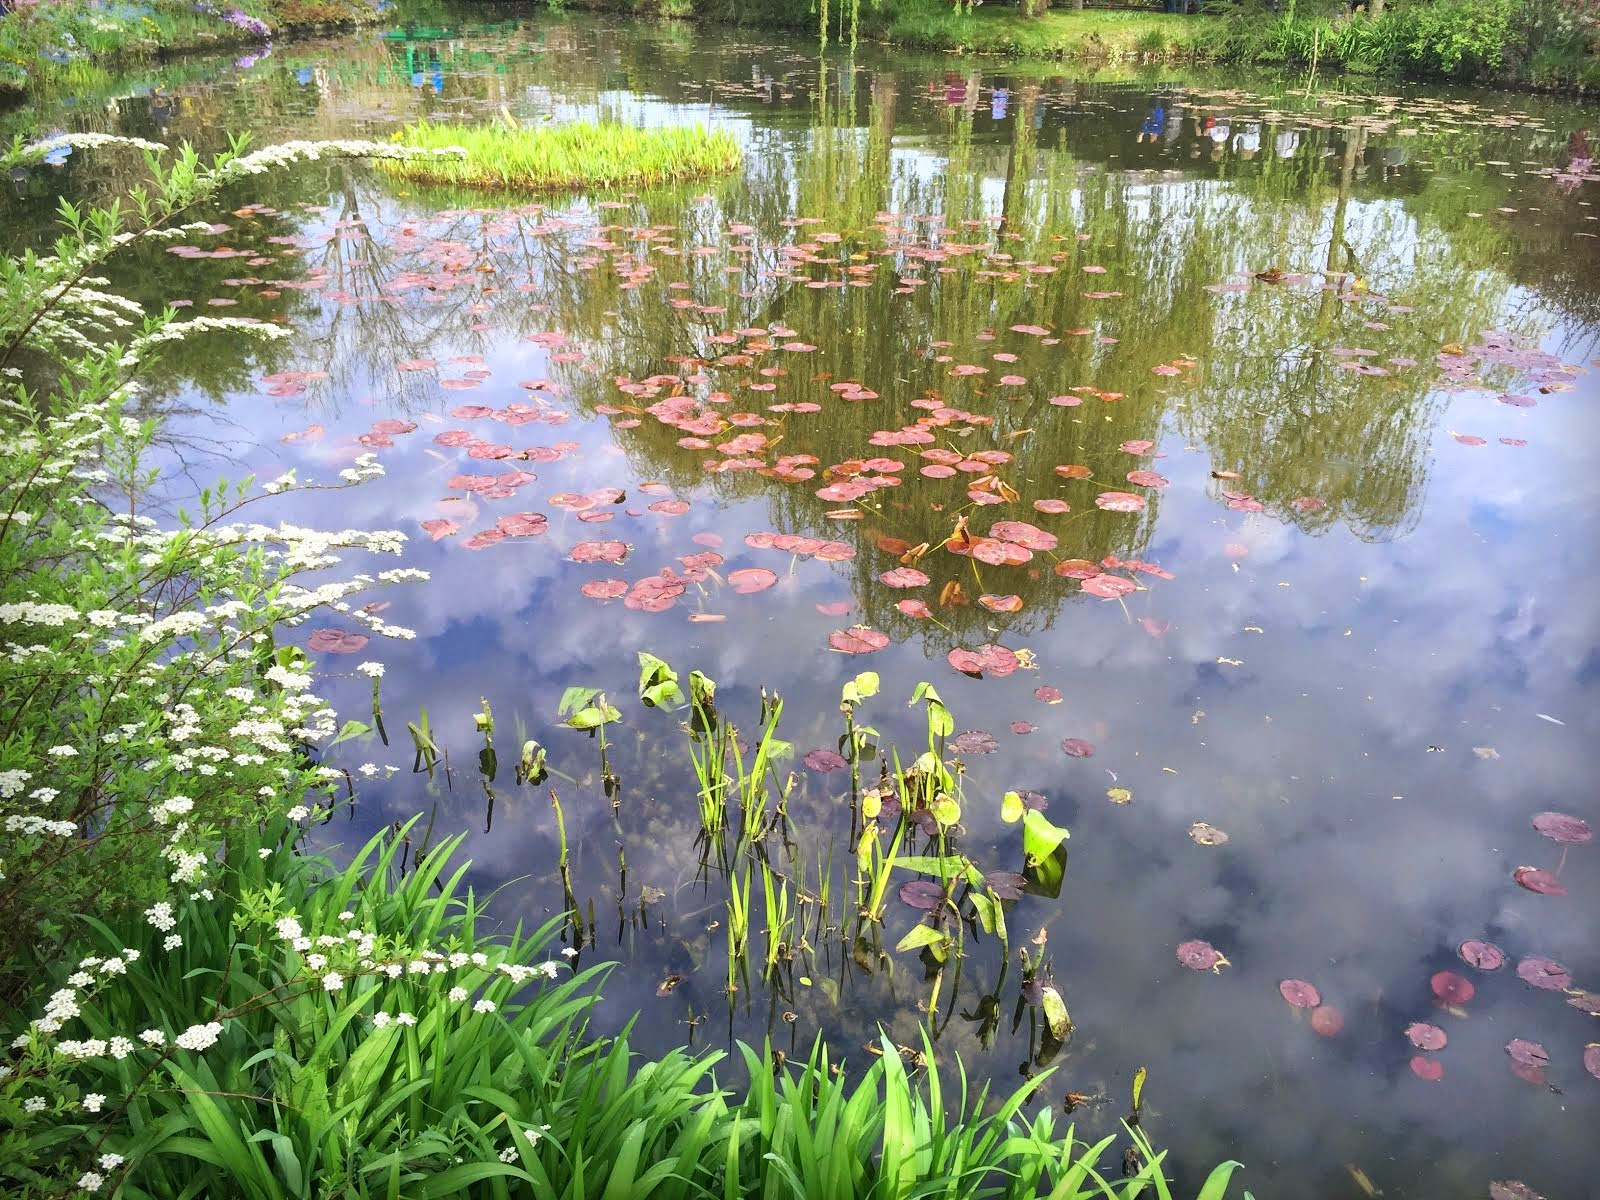 Water lilies in the pond, Giverny, mid April